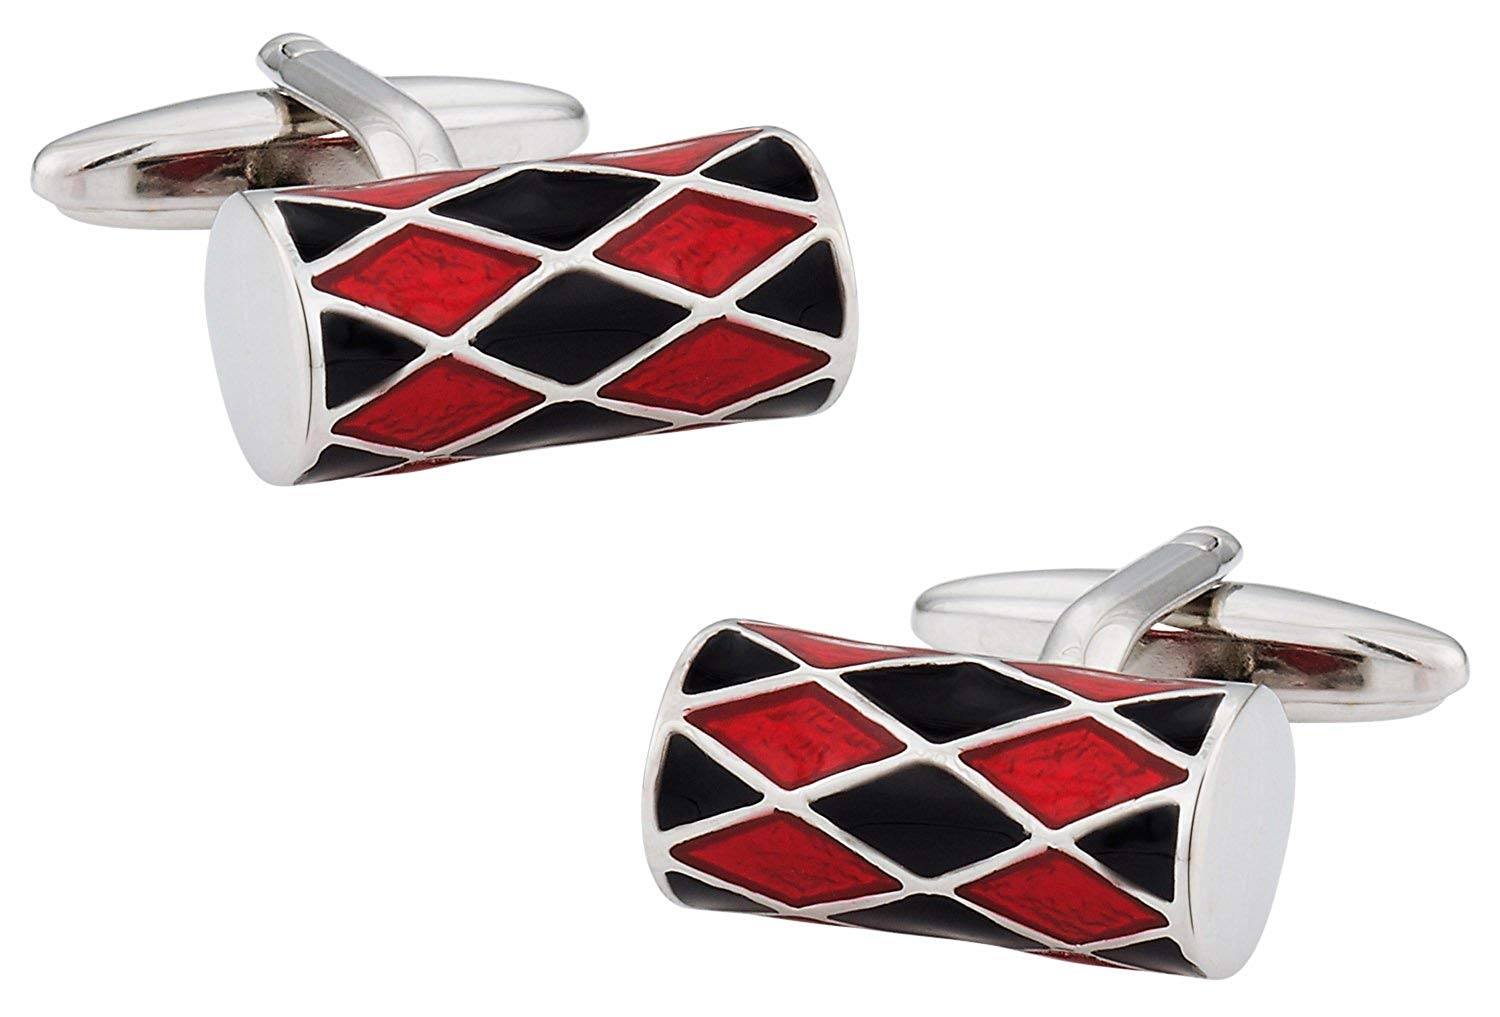 Cuff-Daddy Unique Red & Black Barrel Silver Cufflinks with Presentation Box